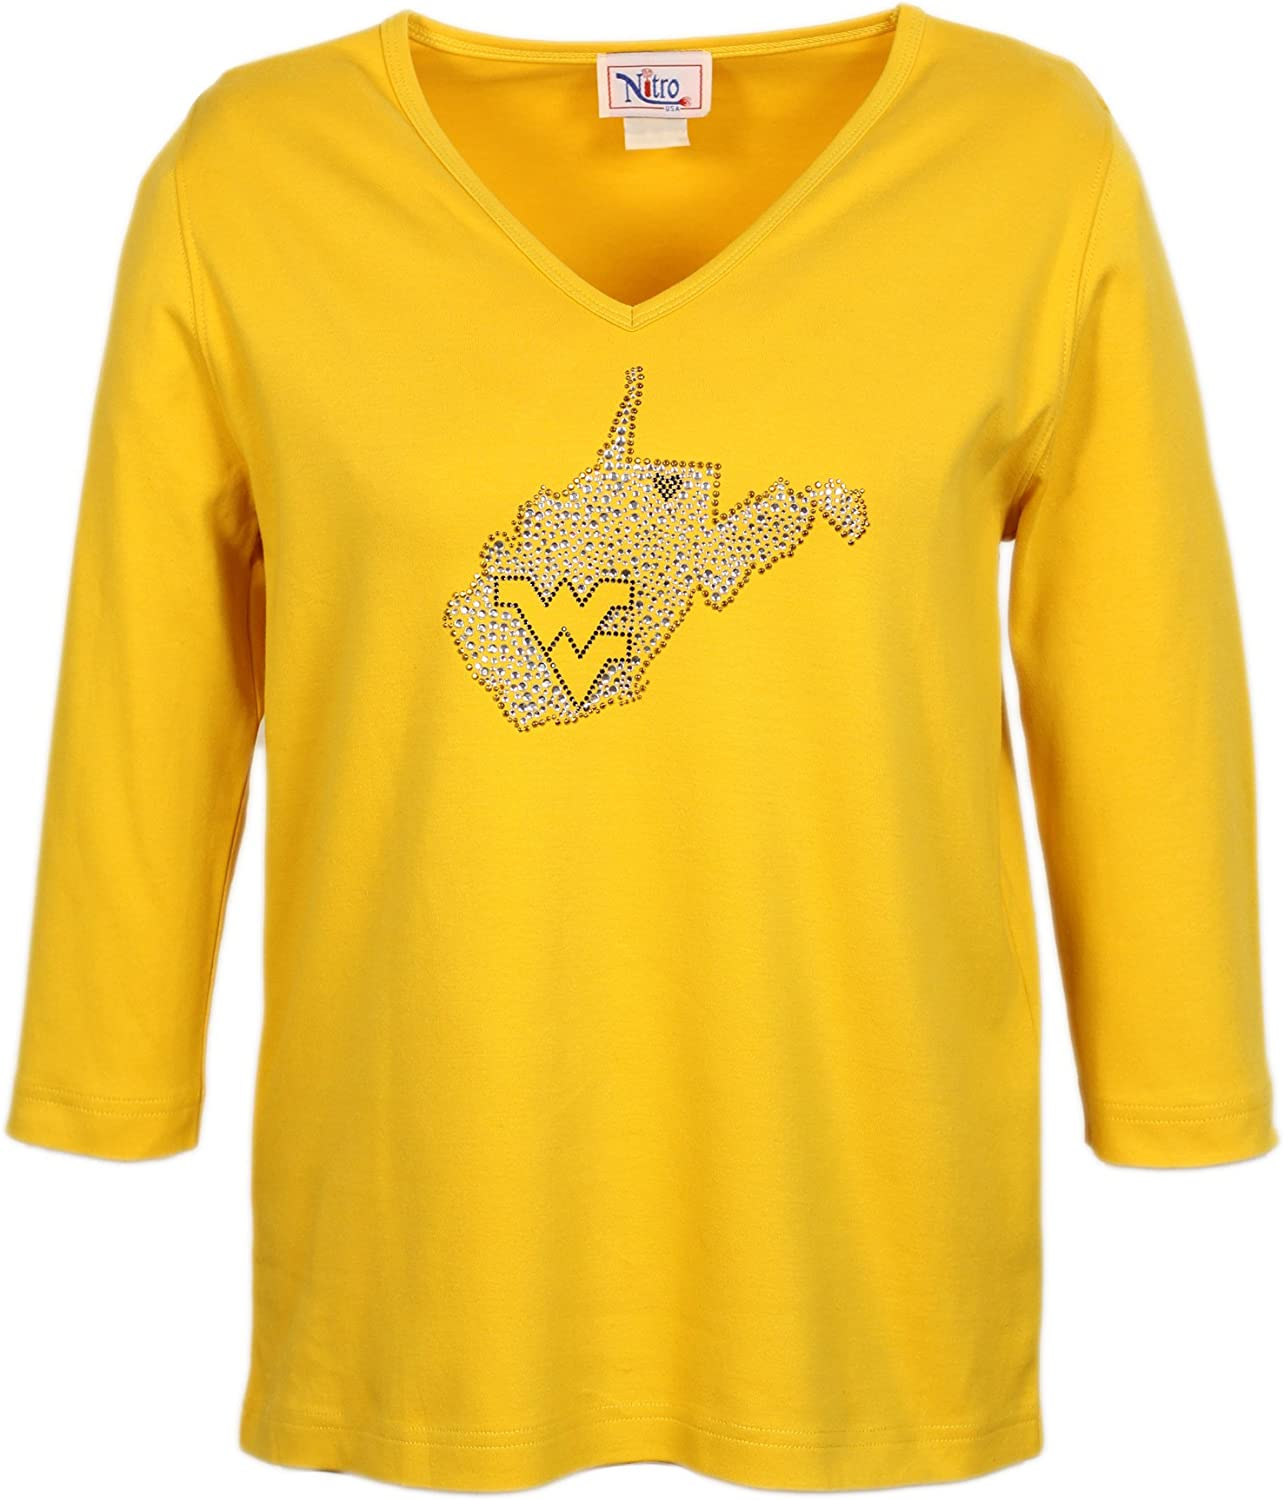 Nitro USA NCAA Womens V-Neck 3//4 Sleeve Top with Rhinestone Filled State Heart WV Design